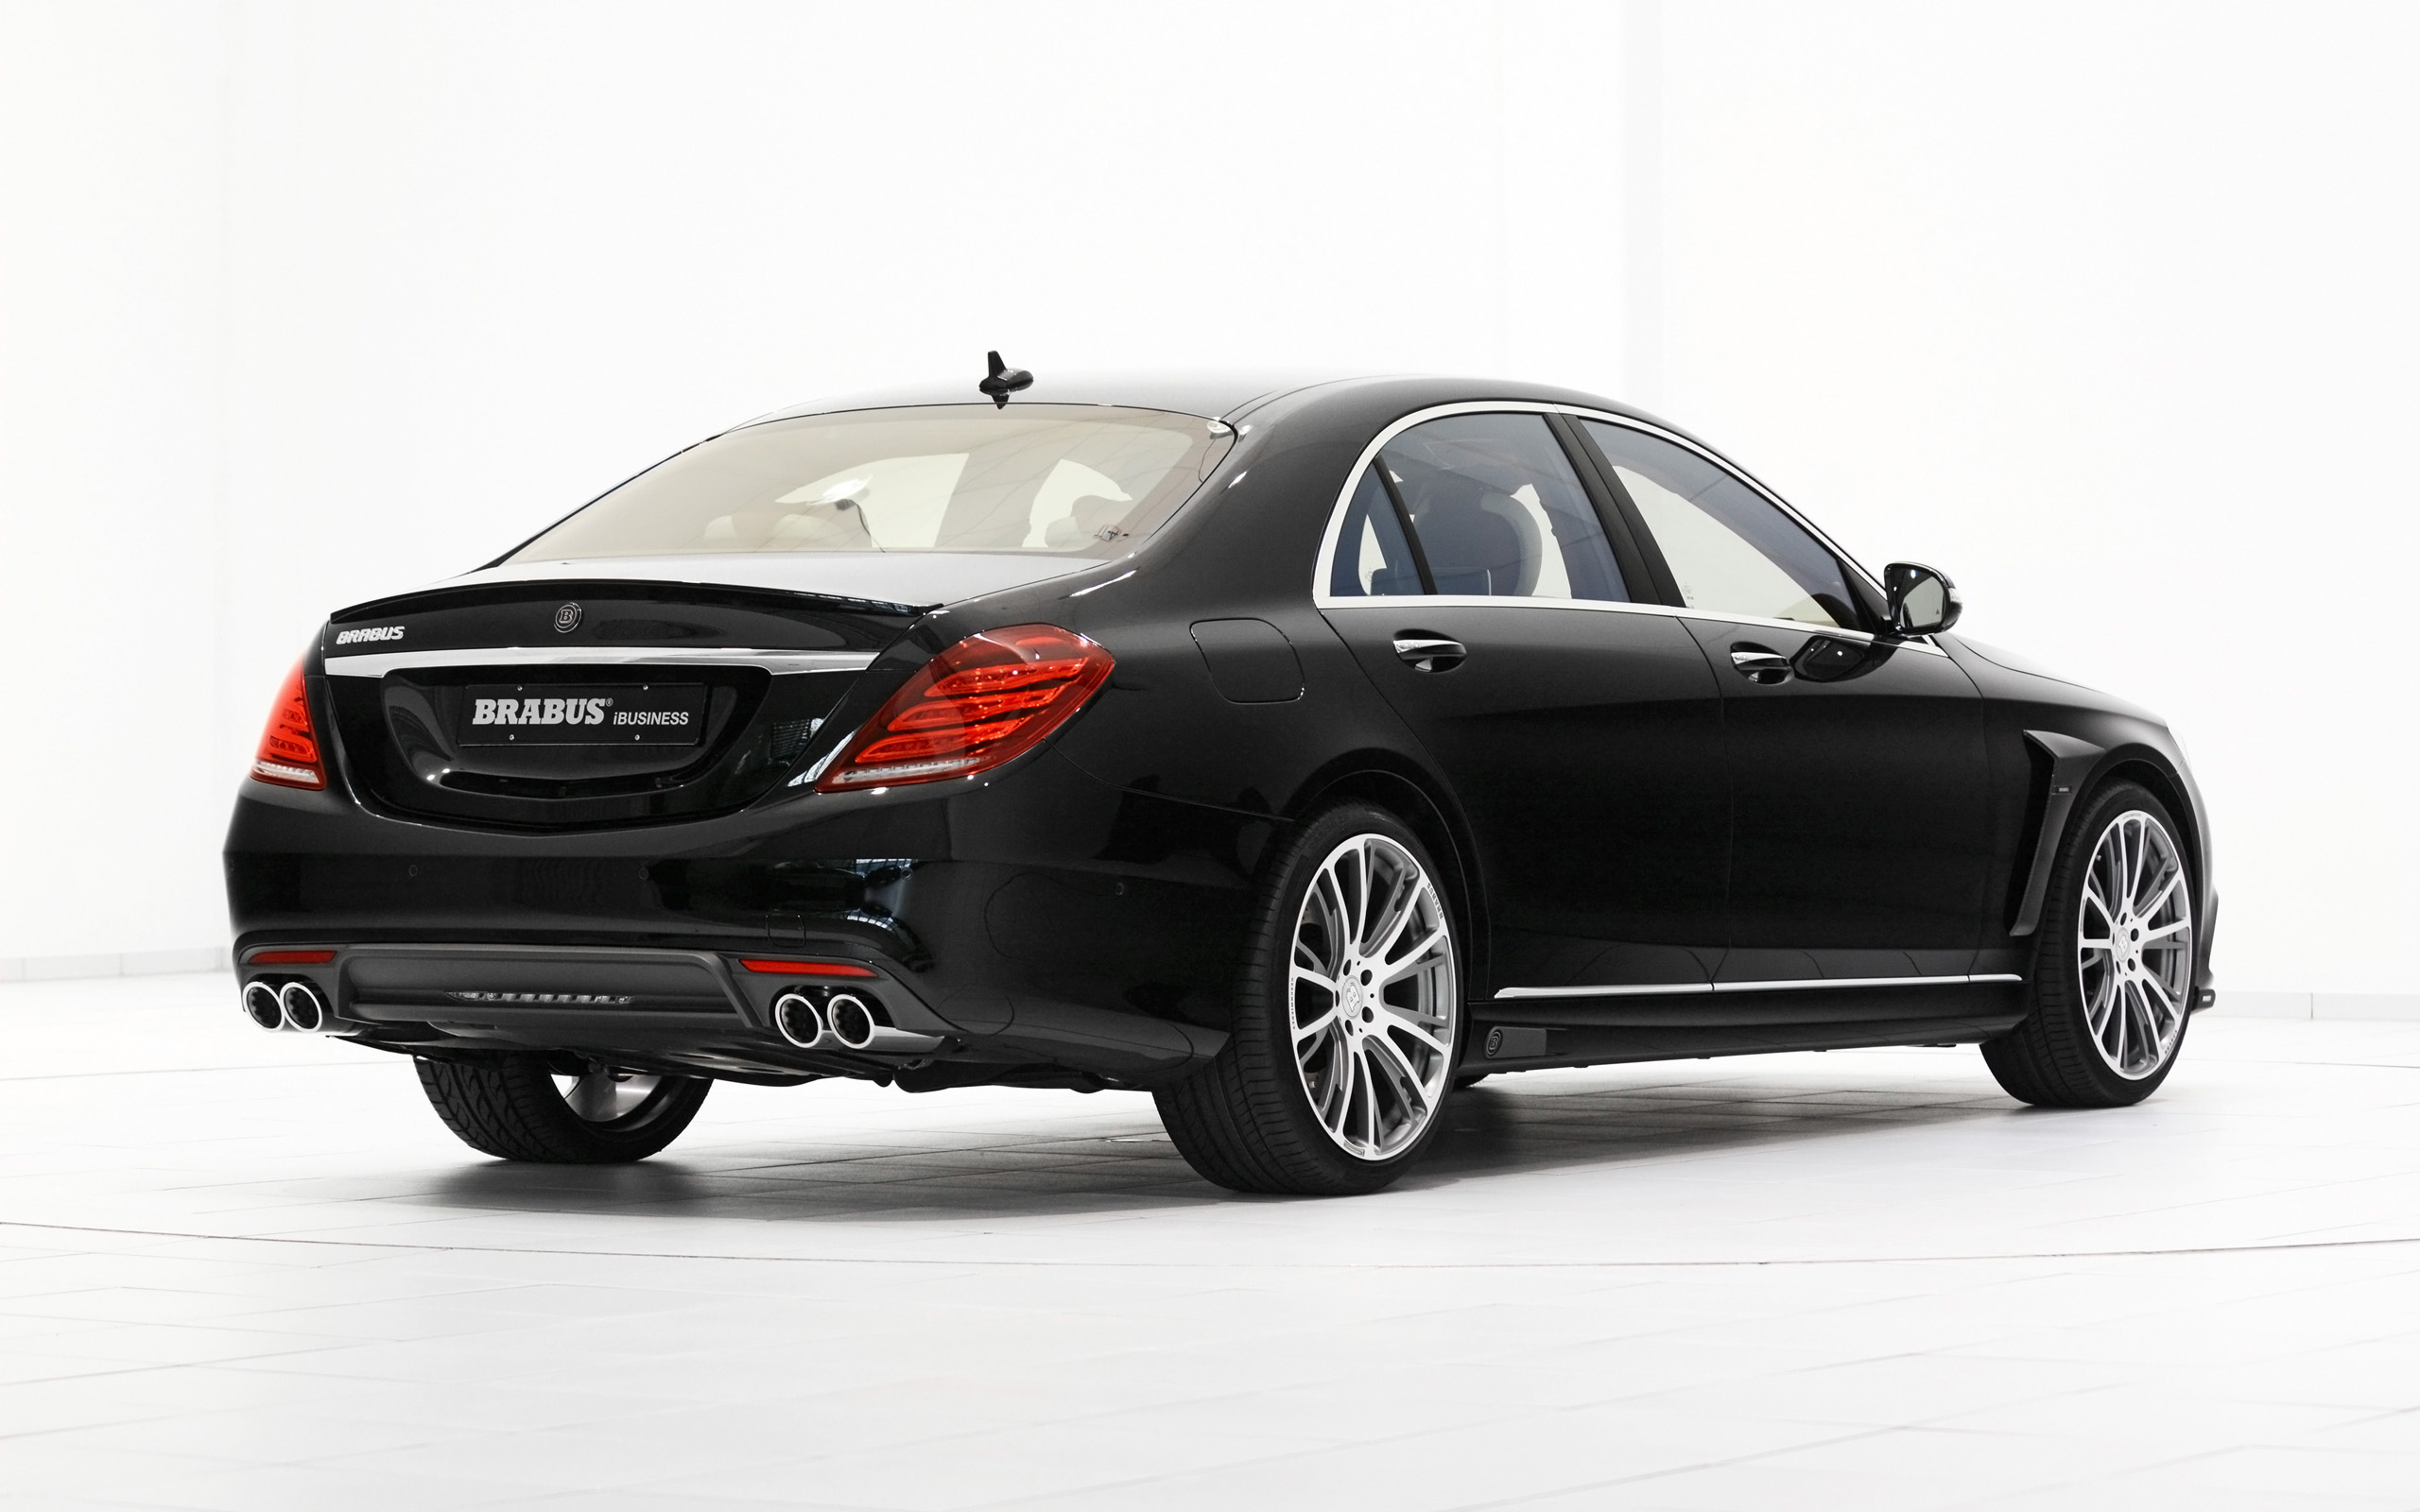 Mercedes-Benz E63 AMG launched at price Rs 1.29 crores